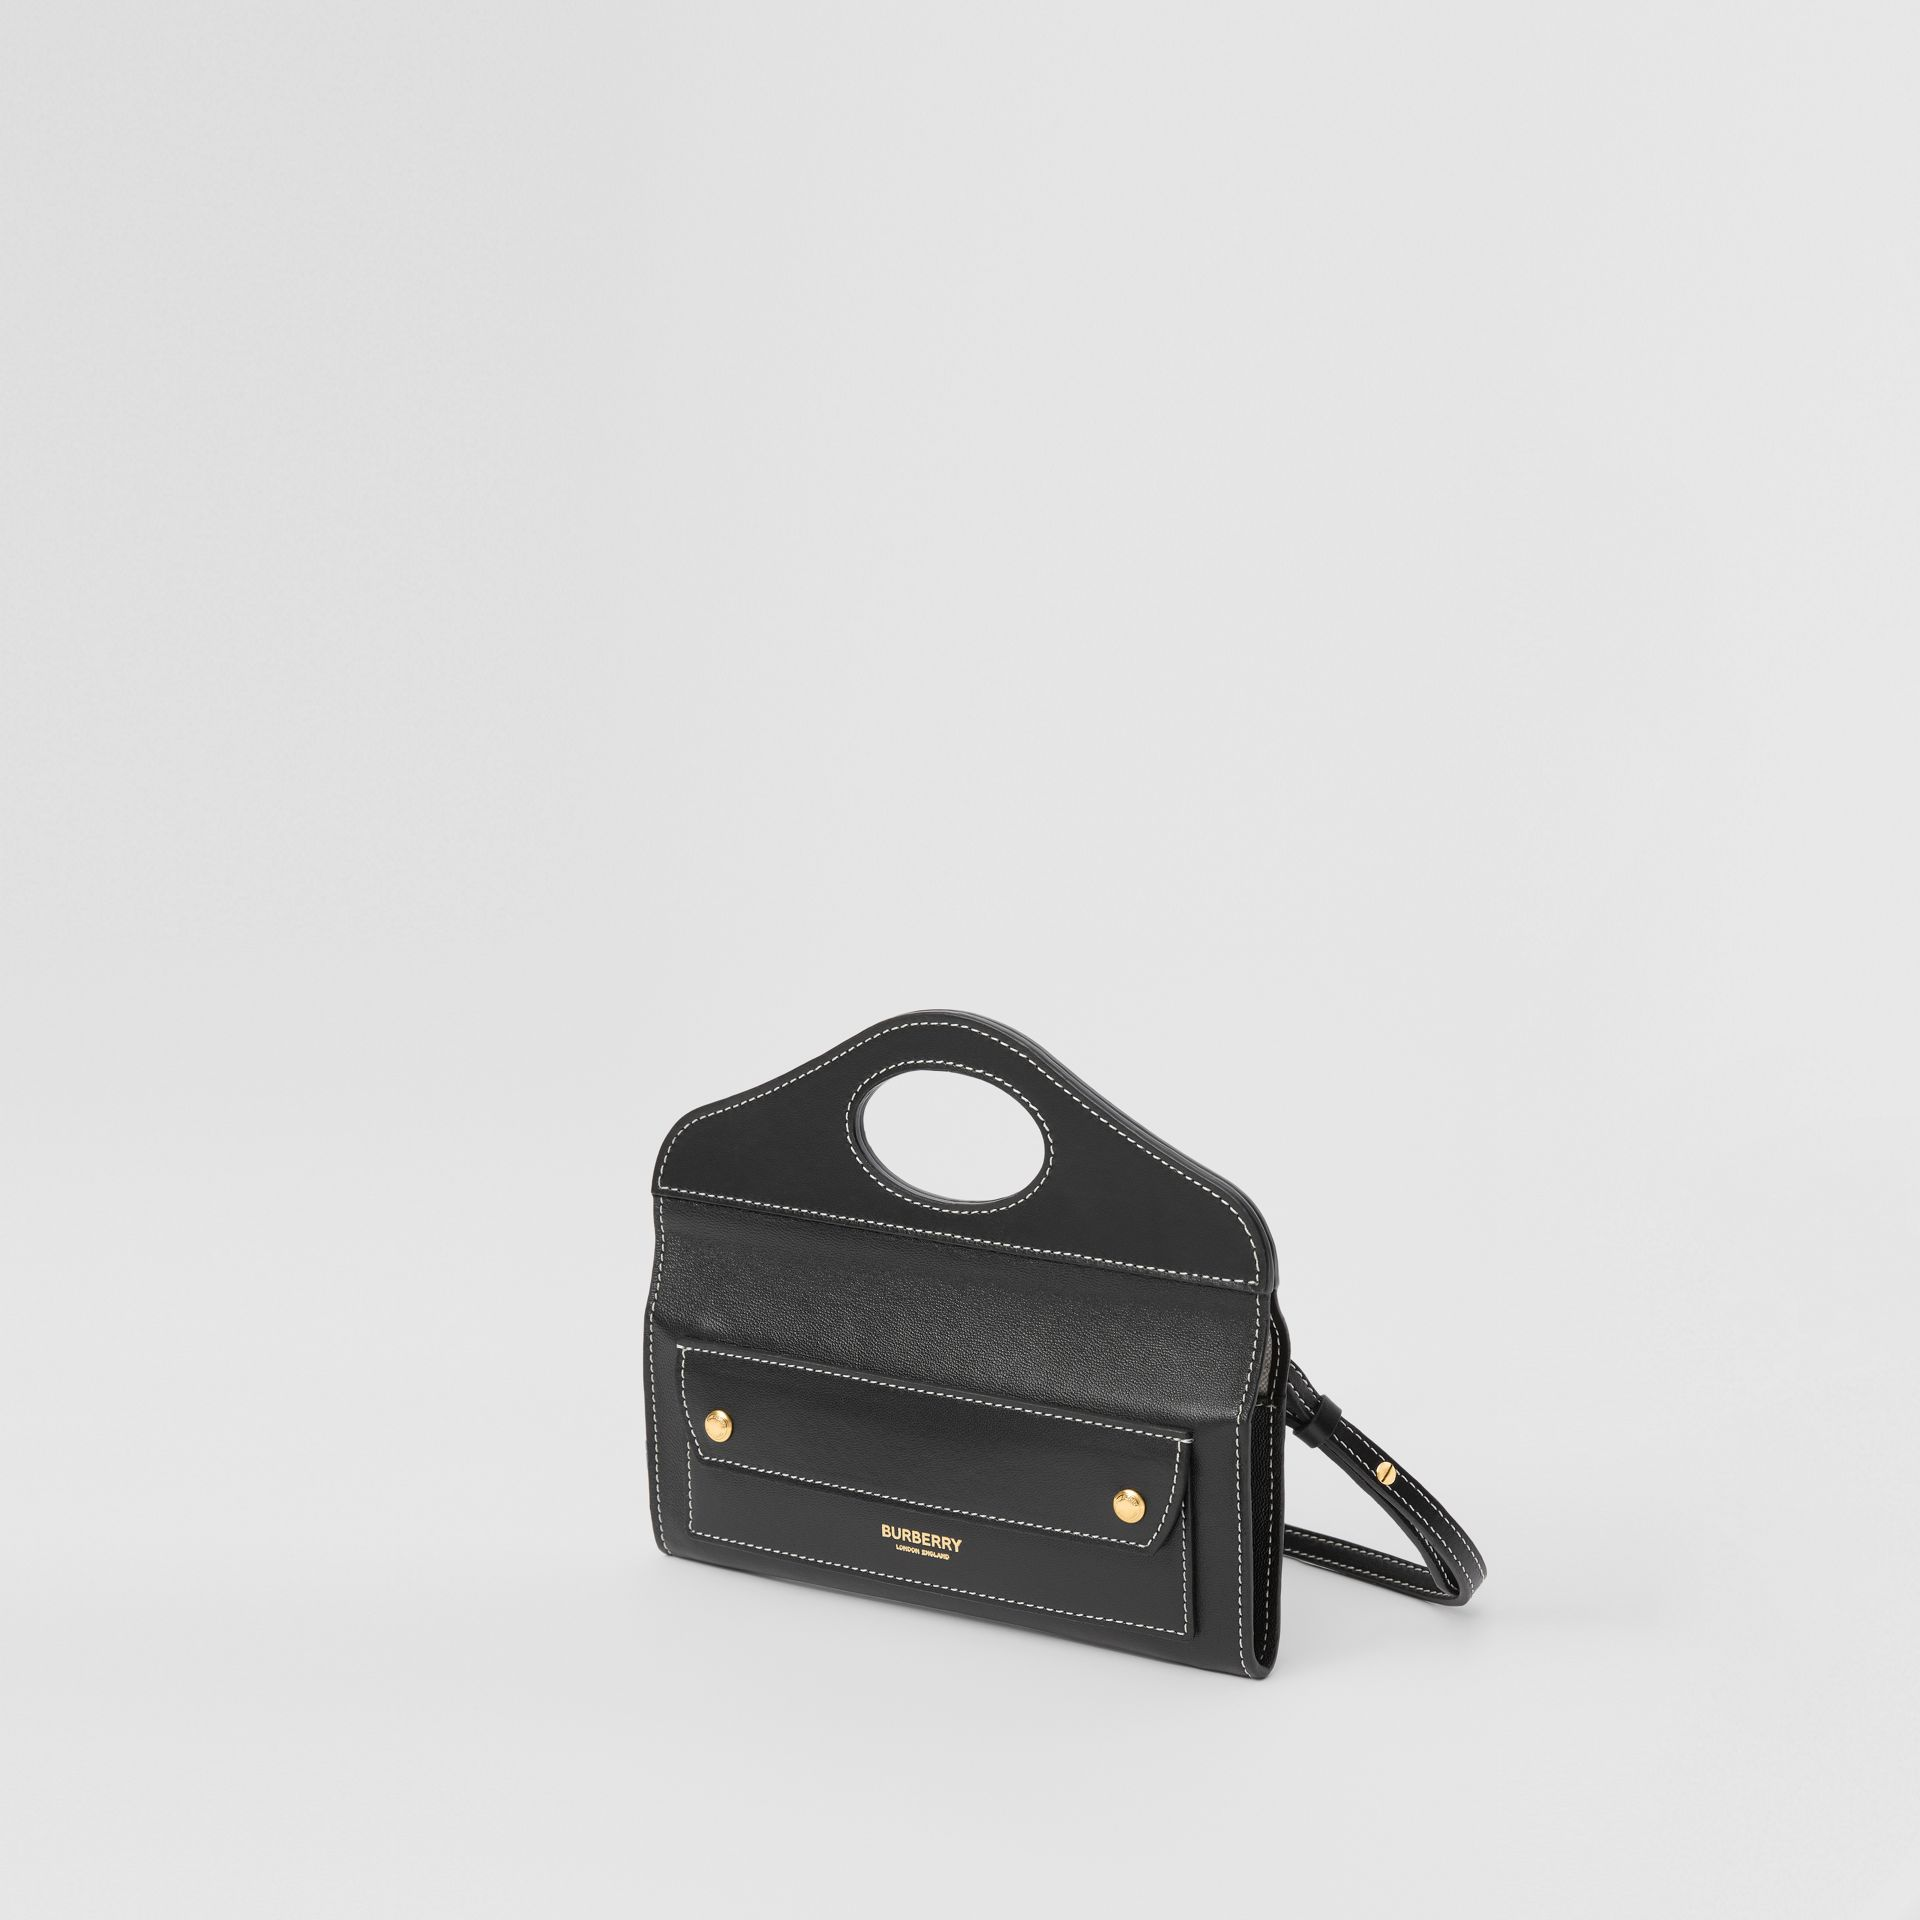 Mini Topstitched Lambskin Pocket Clutch in Black | Burberry - gallery image 4